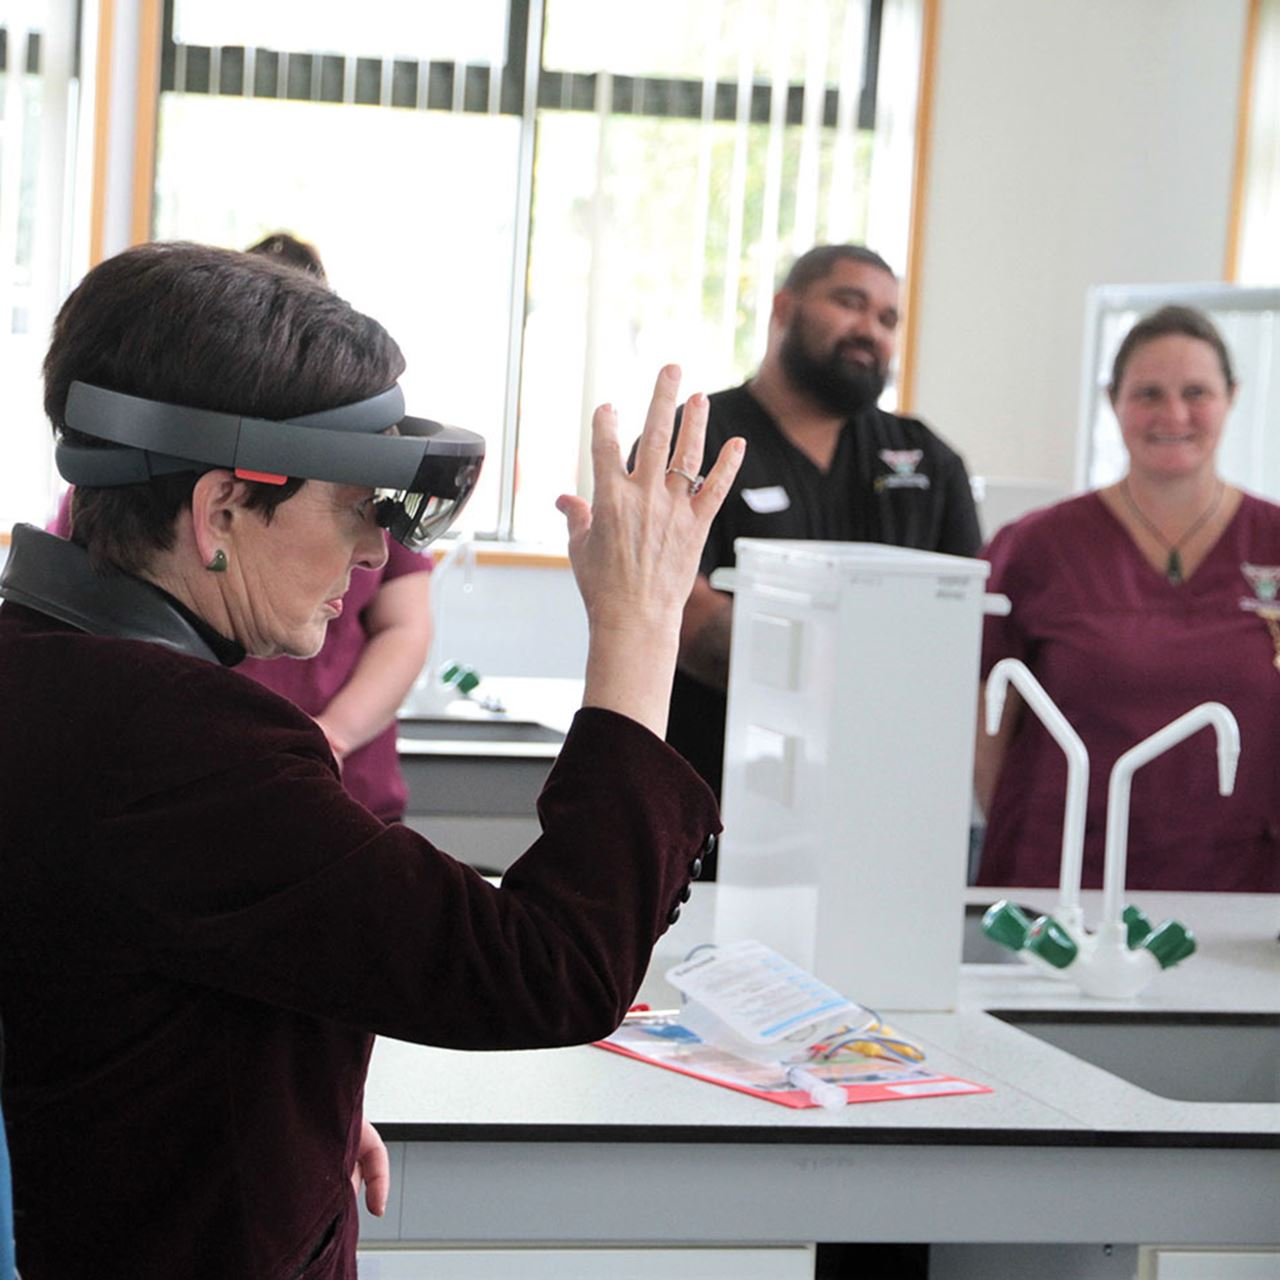 Augmented reality (AR) technology is being used to train student nurses at Awanuiārangi.